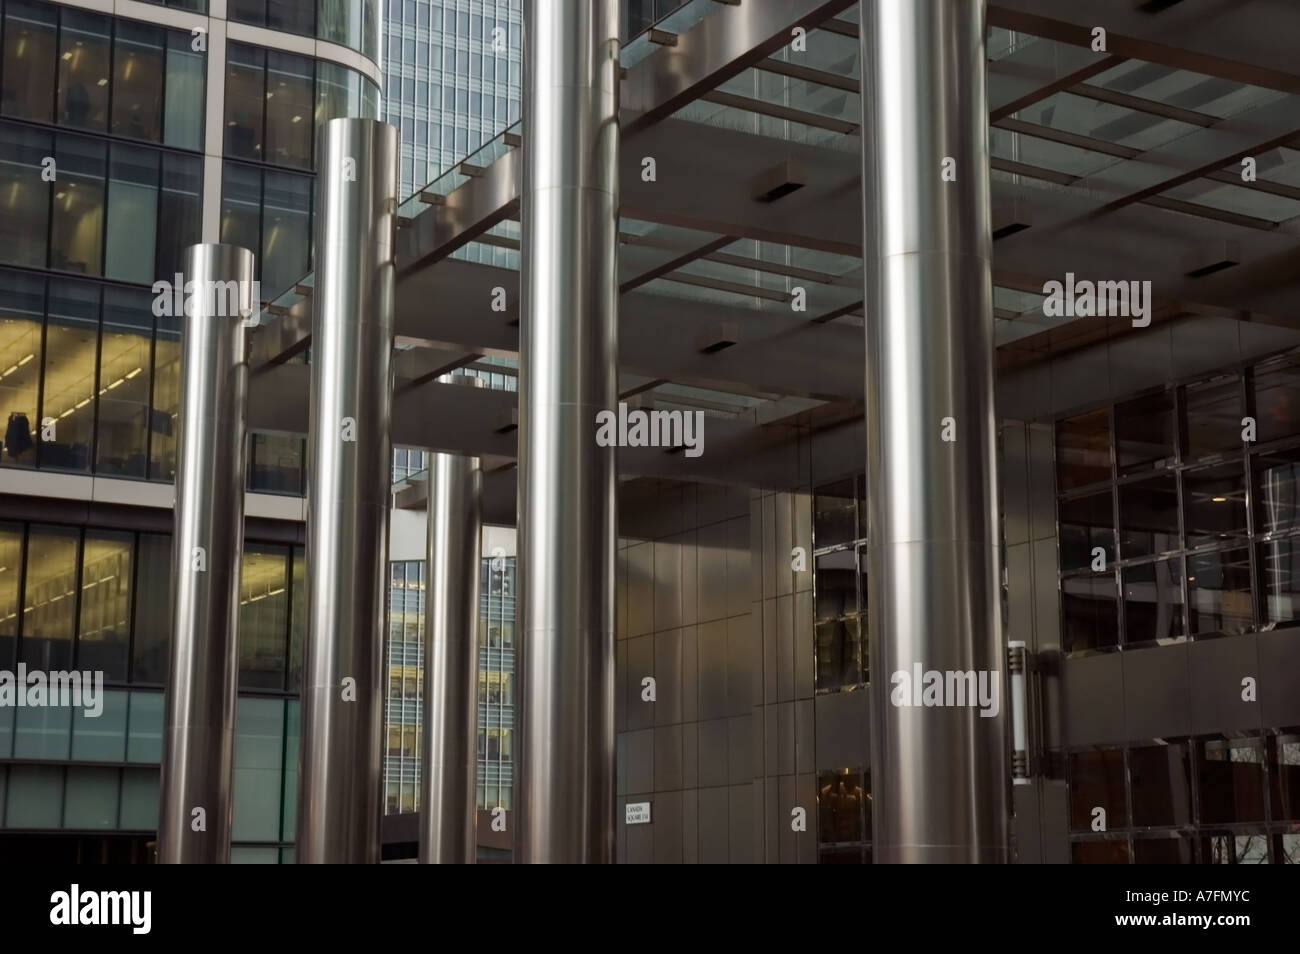 Black Metal Pillar Building : Metal pillars outside modern office building stock photo